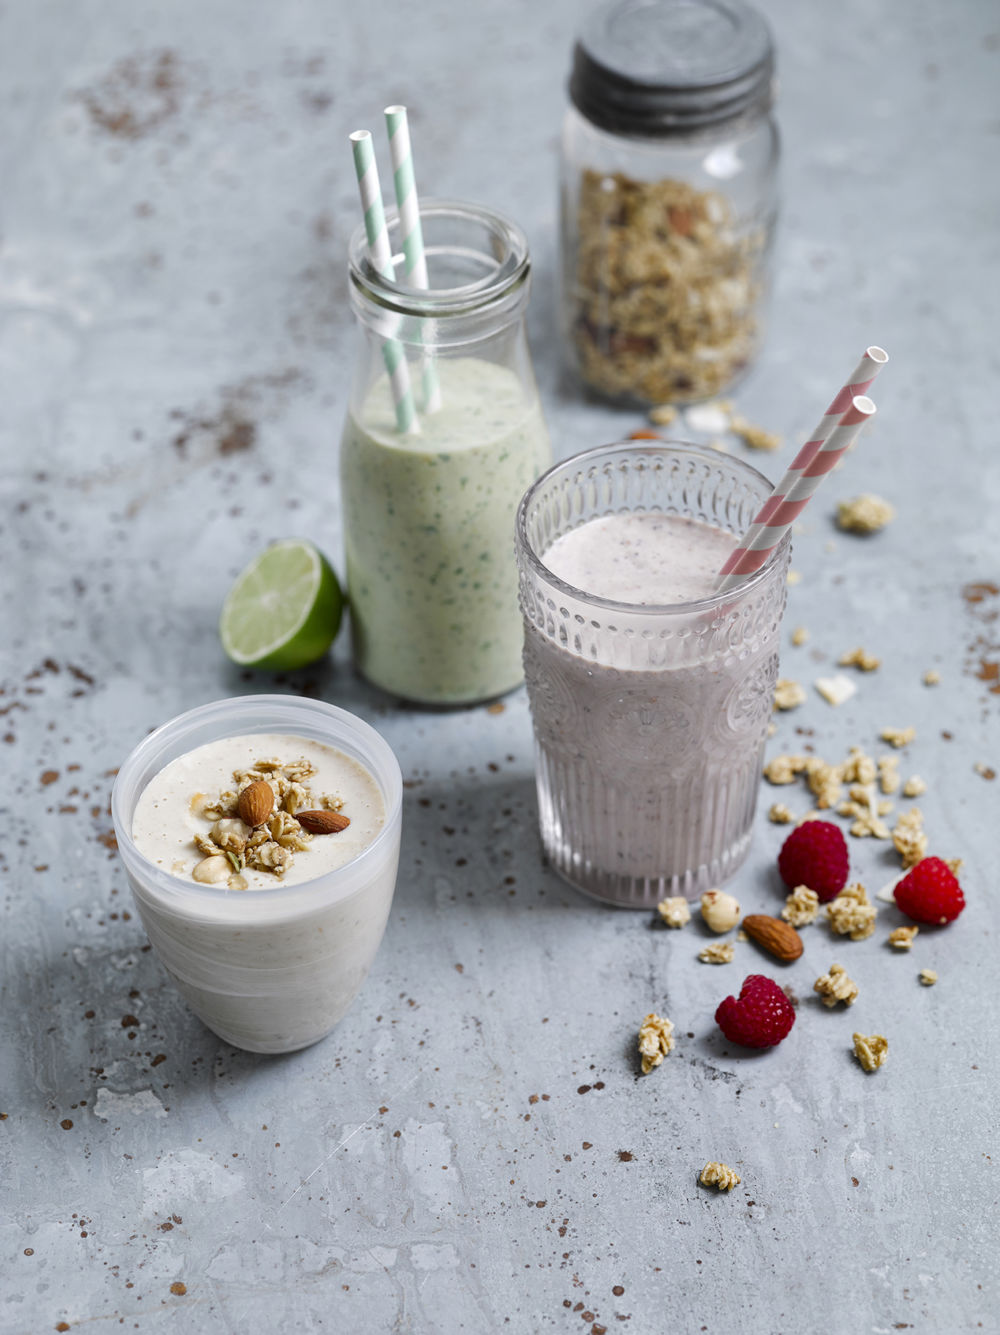 Banana Oat Peanut Butter Smoothie